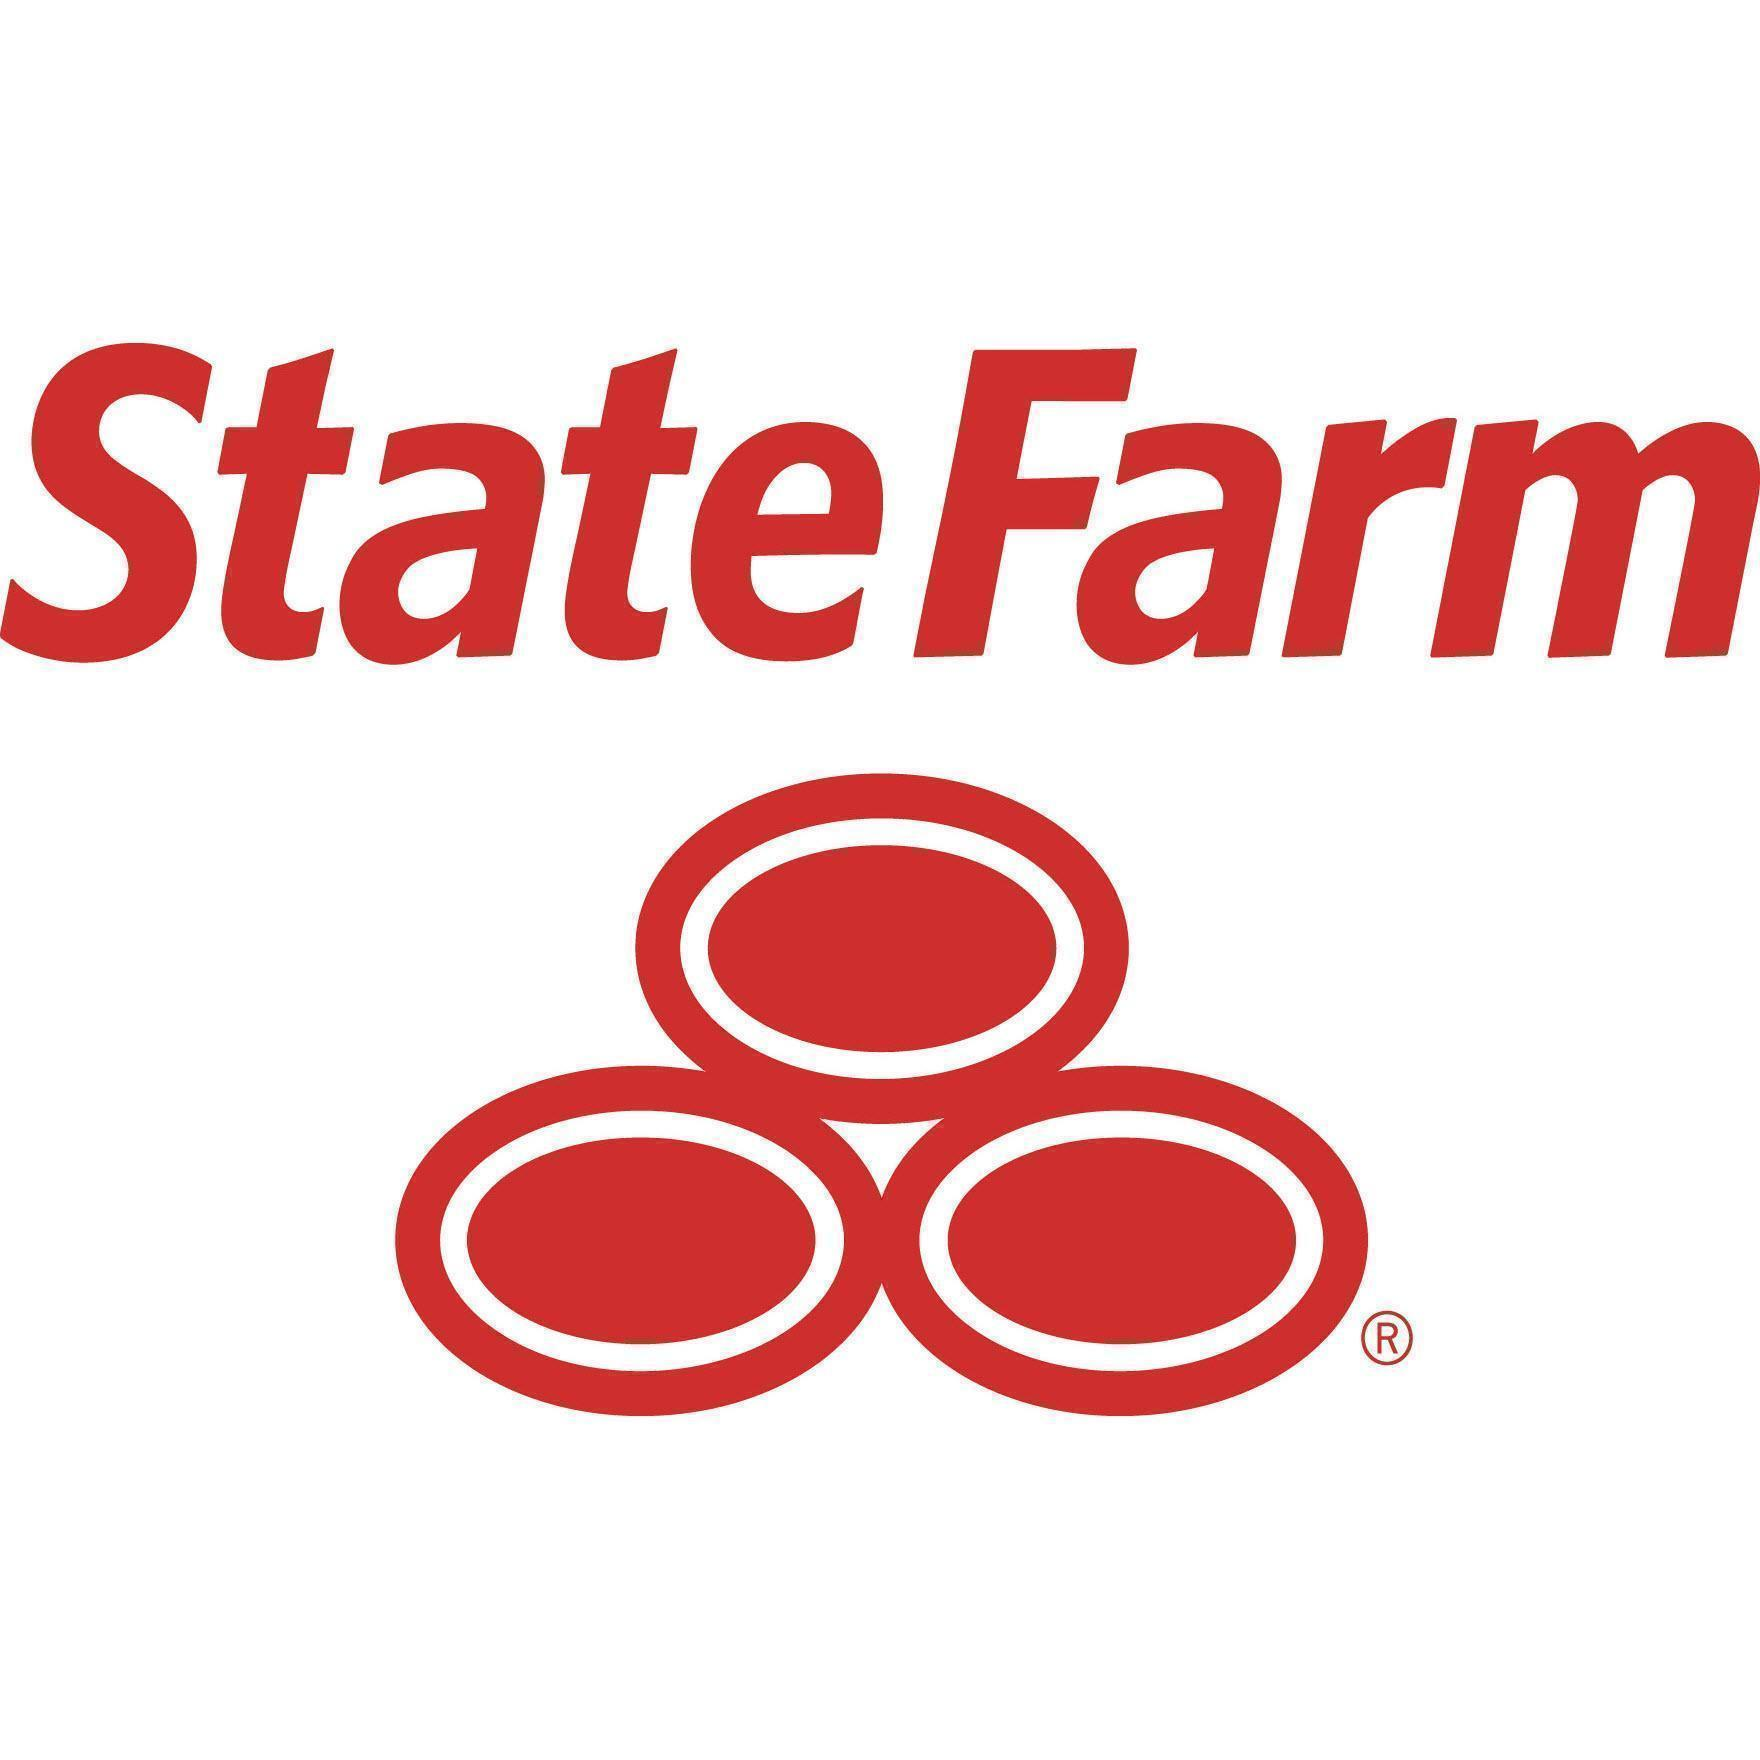 Eloisa Villarreal Sharp - State Farm Insurance Agent